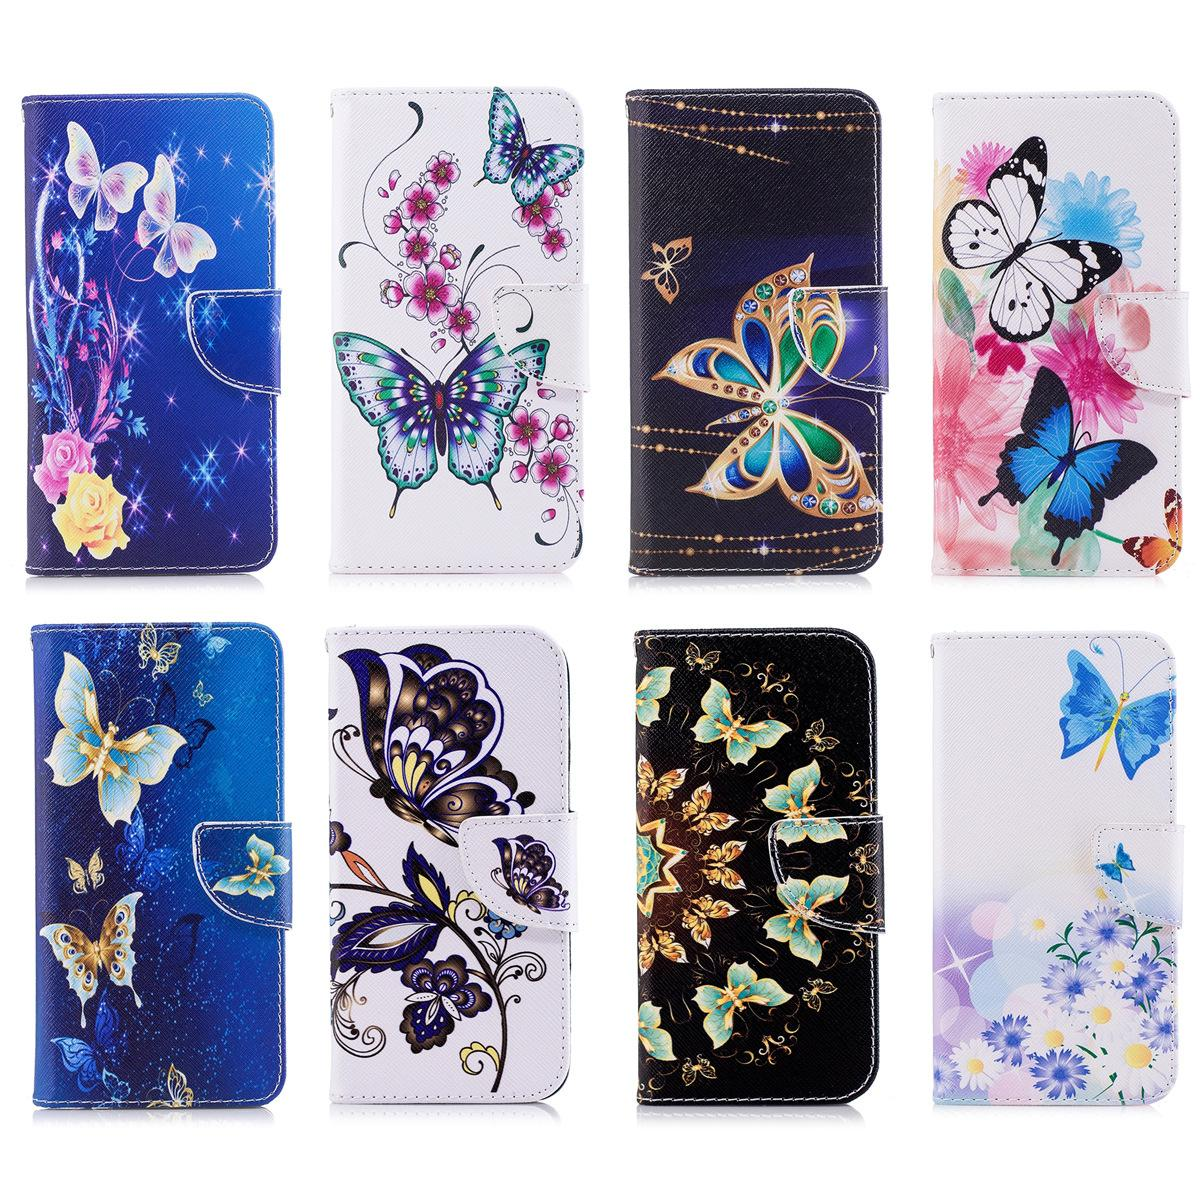 Beautiful Butterfly Series Mobile Phone Flip Wallet Case Stand PU Leather Cover with Card Slot Money Holder 65 Models for Option